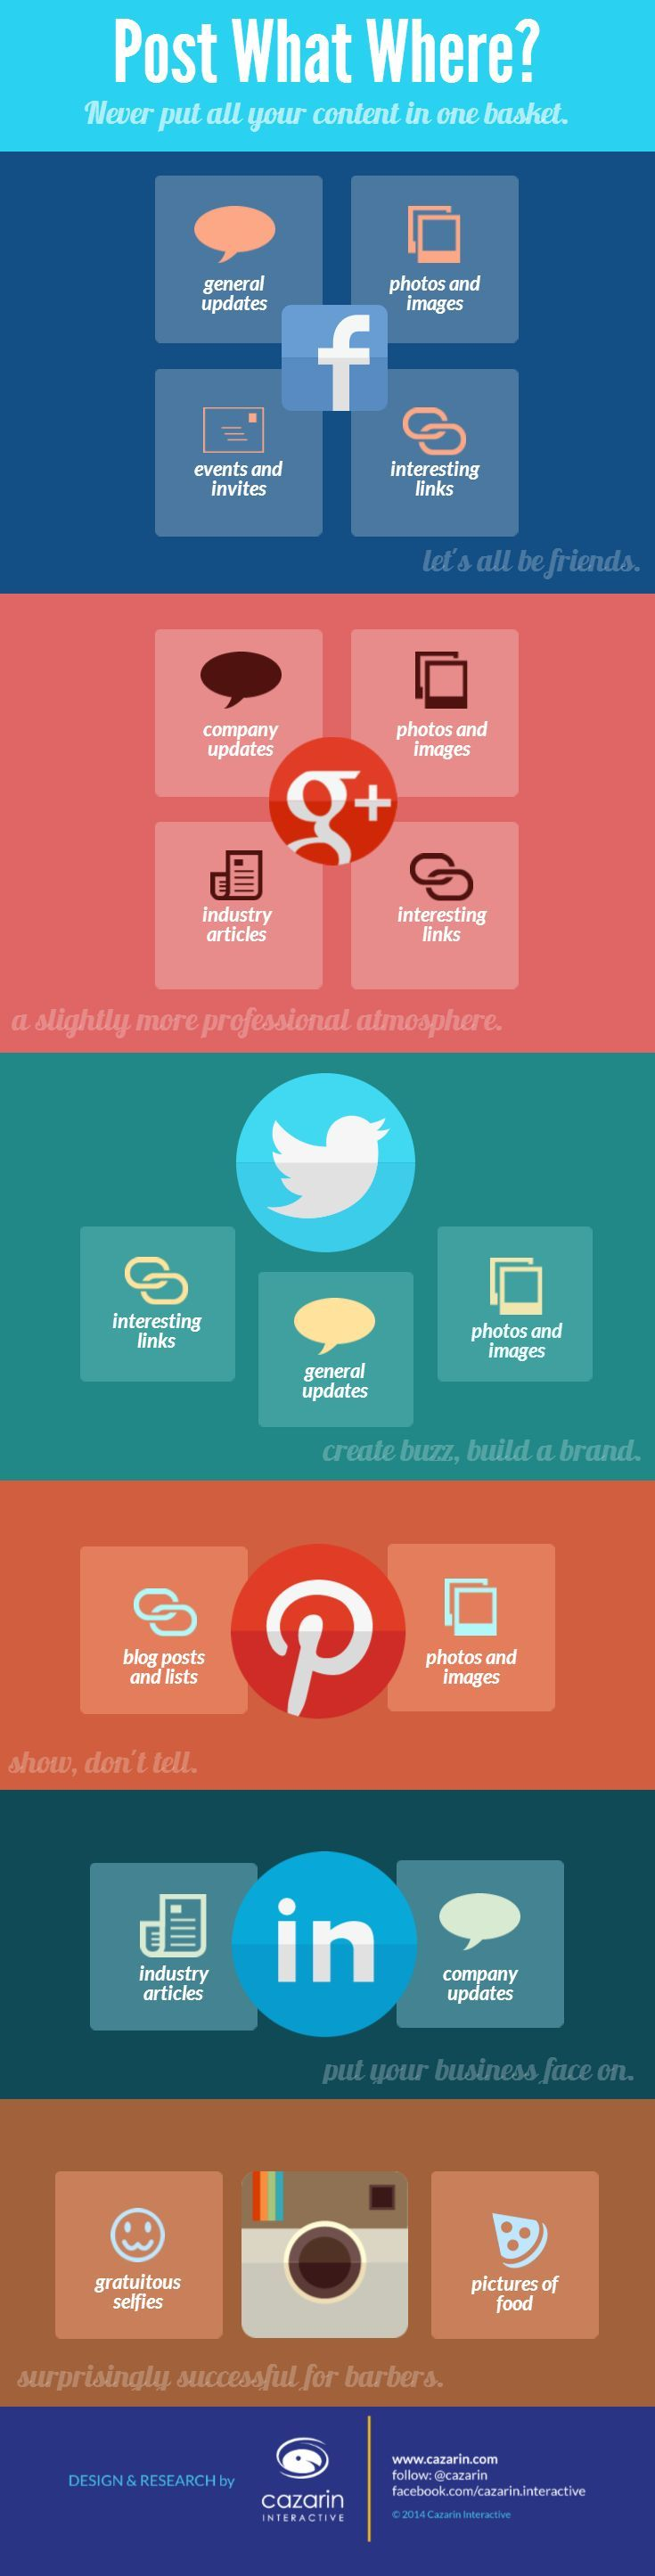 Different social media = different content. A brief infographic to guide your posting decisions. Go forth and share!